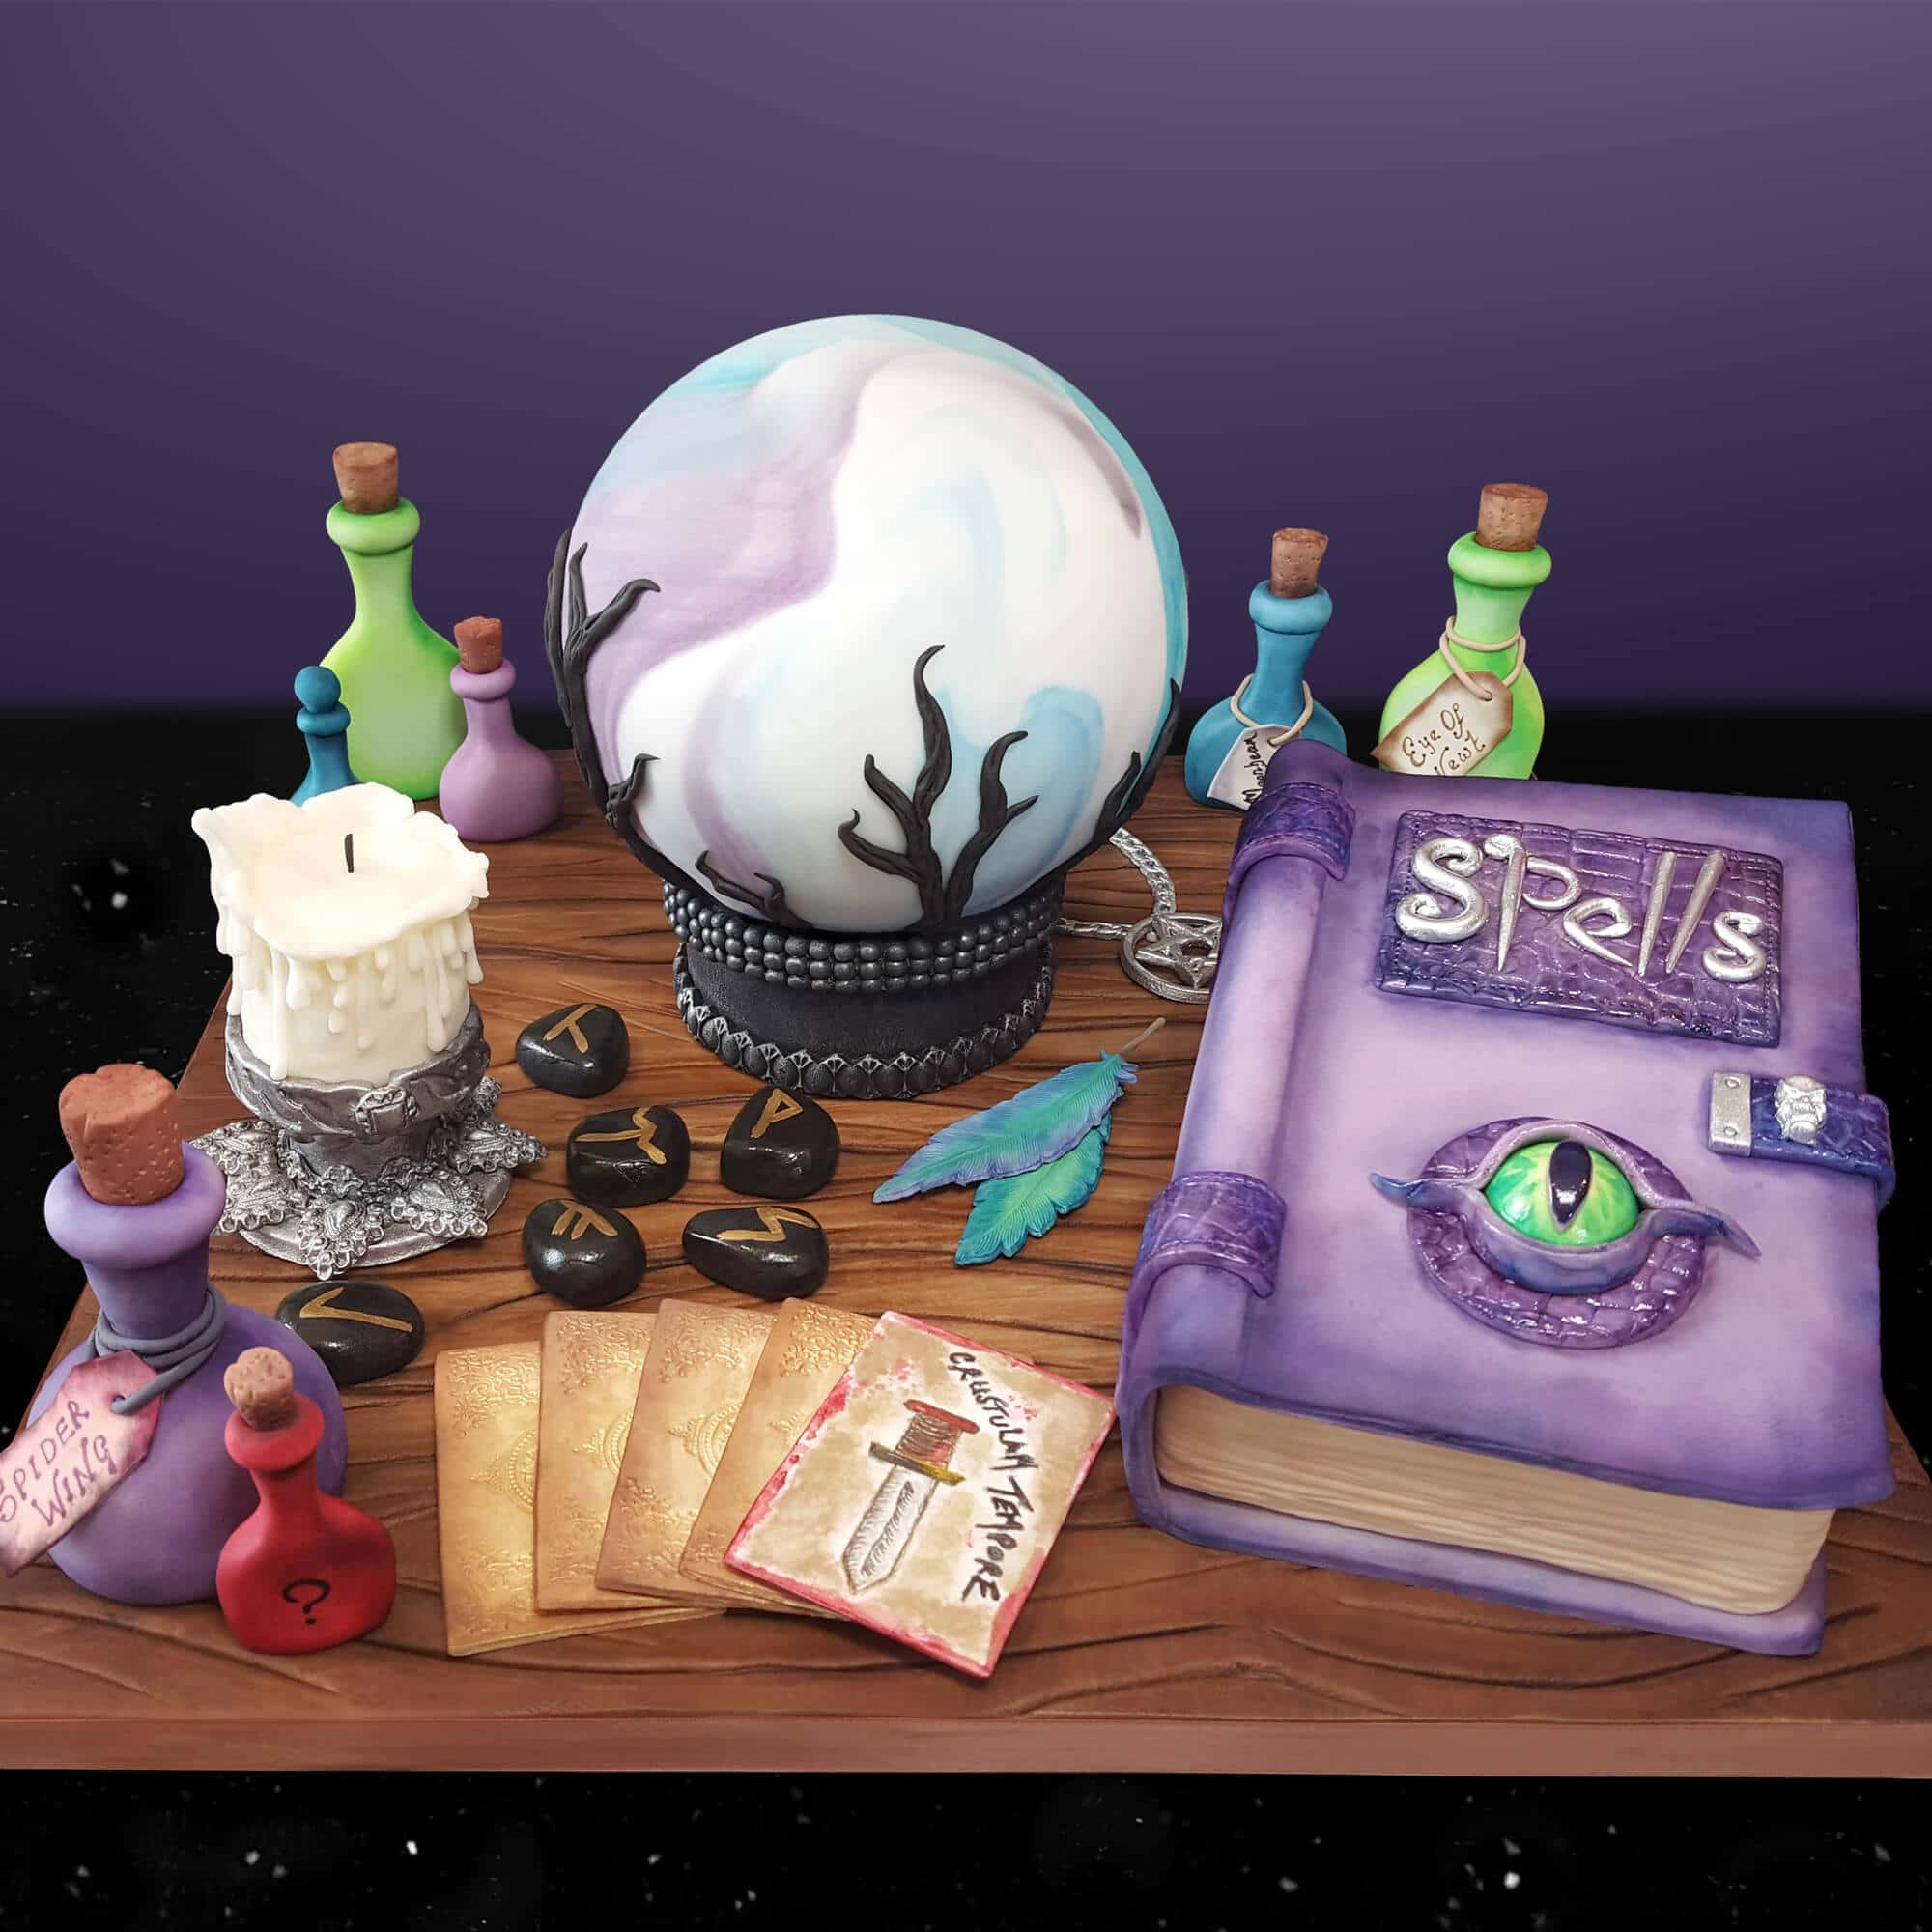 The witch's table cake design by Cake No Mistake